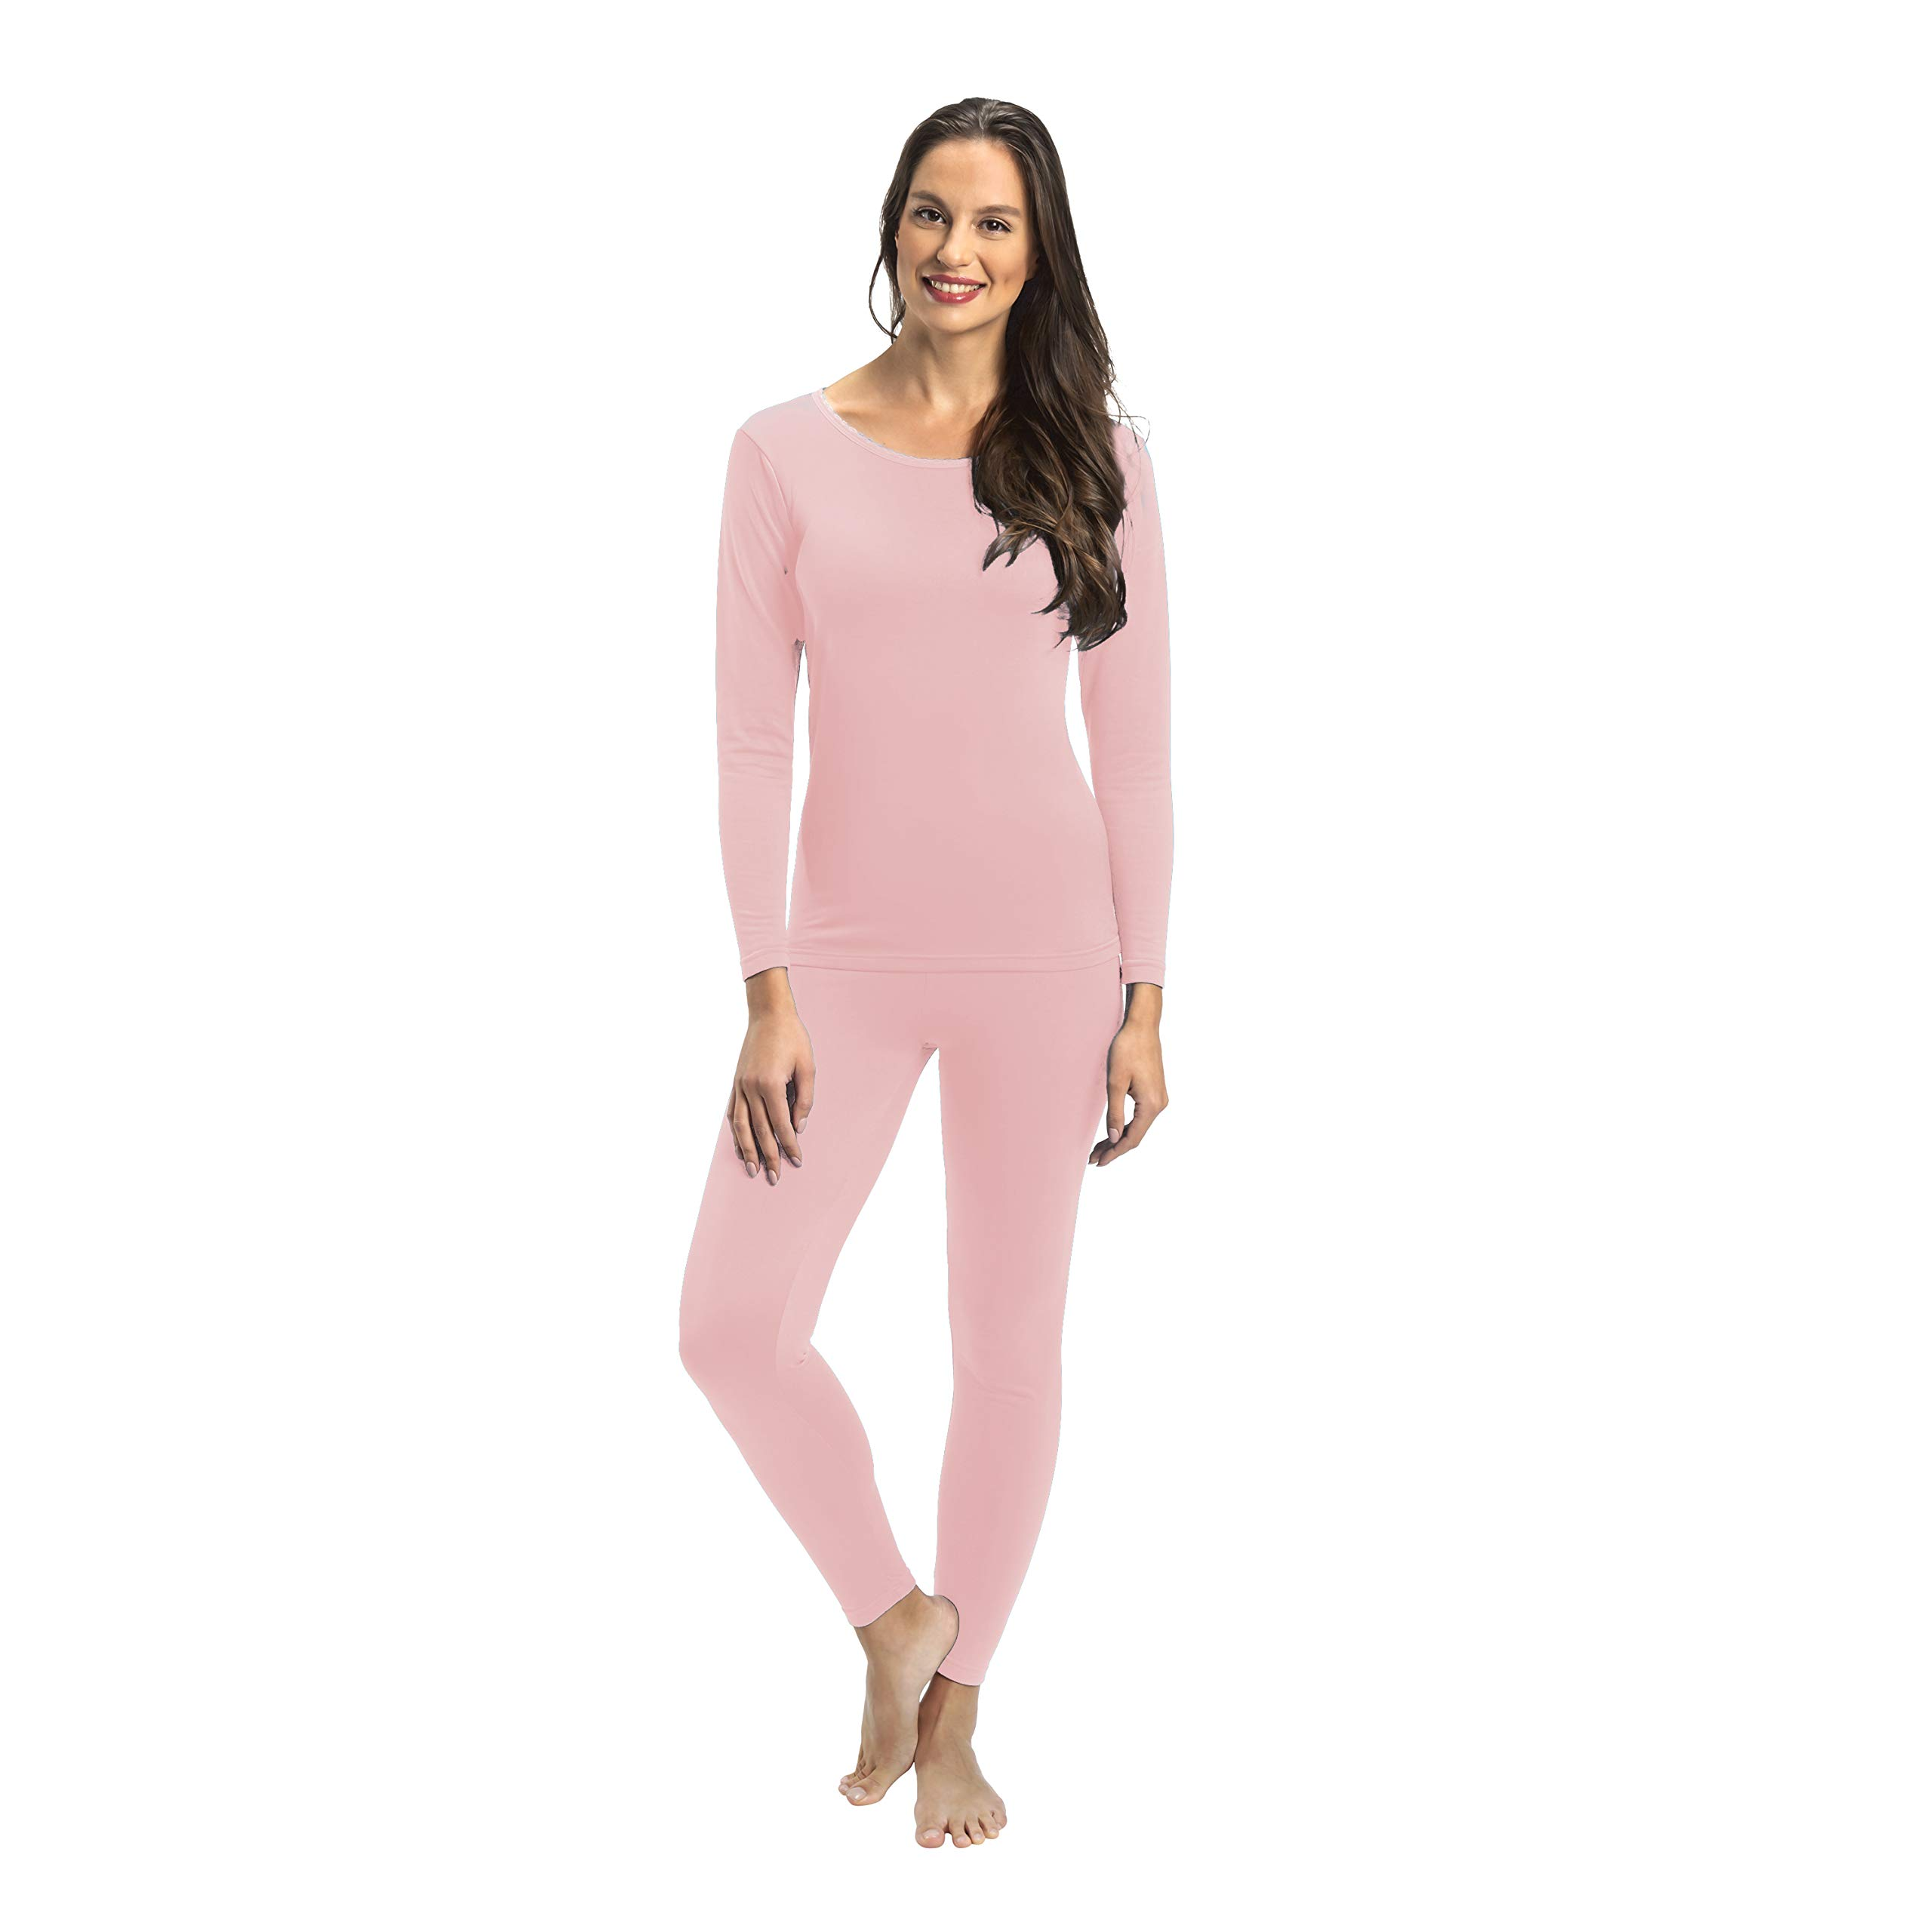 Rocky Womens Thermal 2 Pc Long John Underwear Set Top and Bottom Smooth Knit (Small, Pink) by Rocky